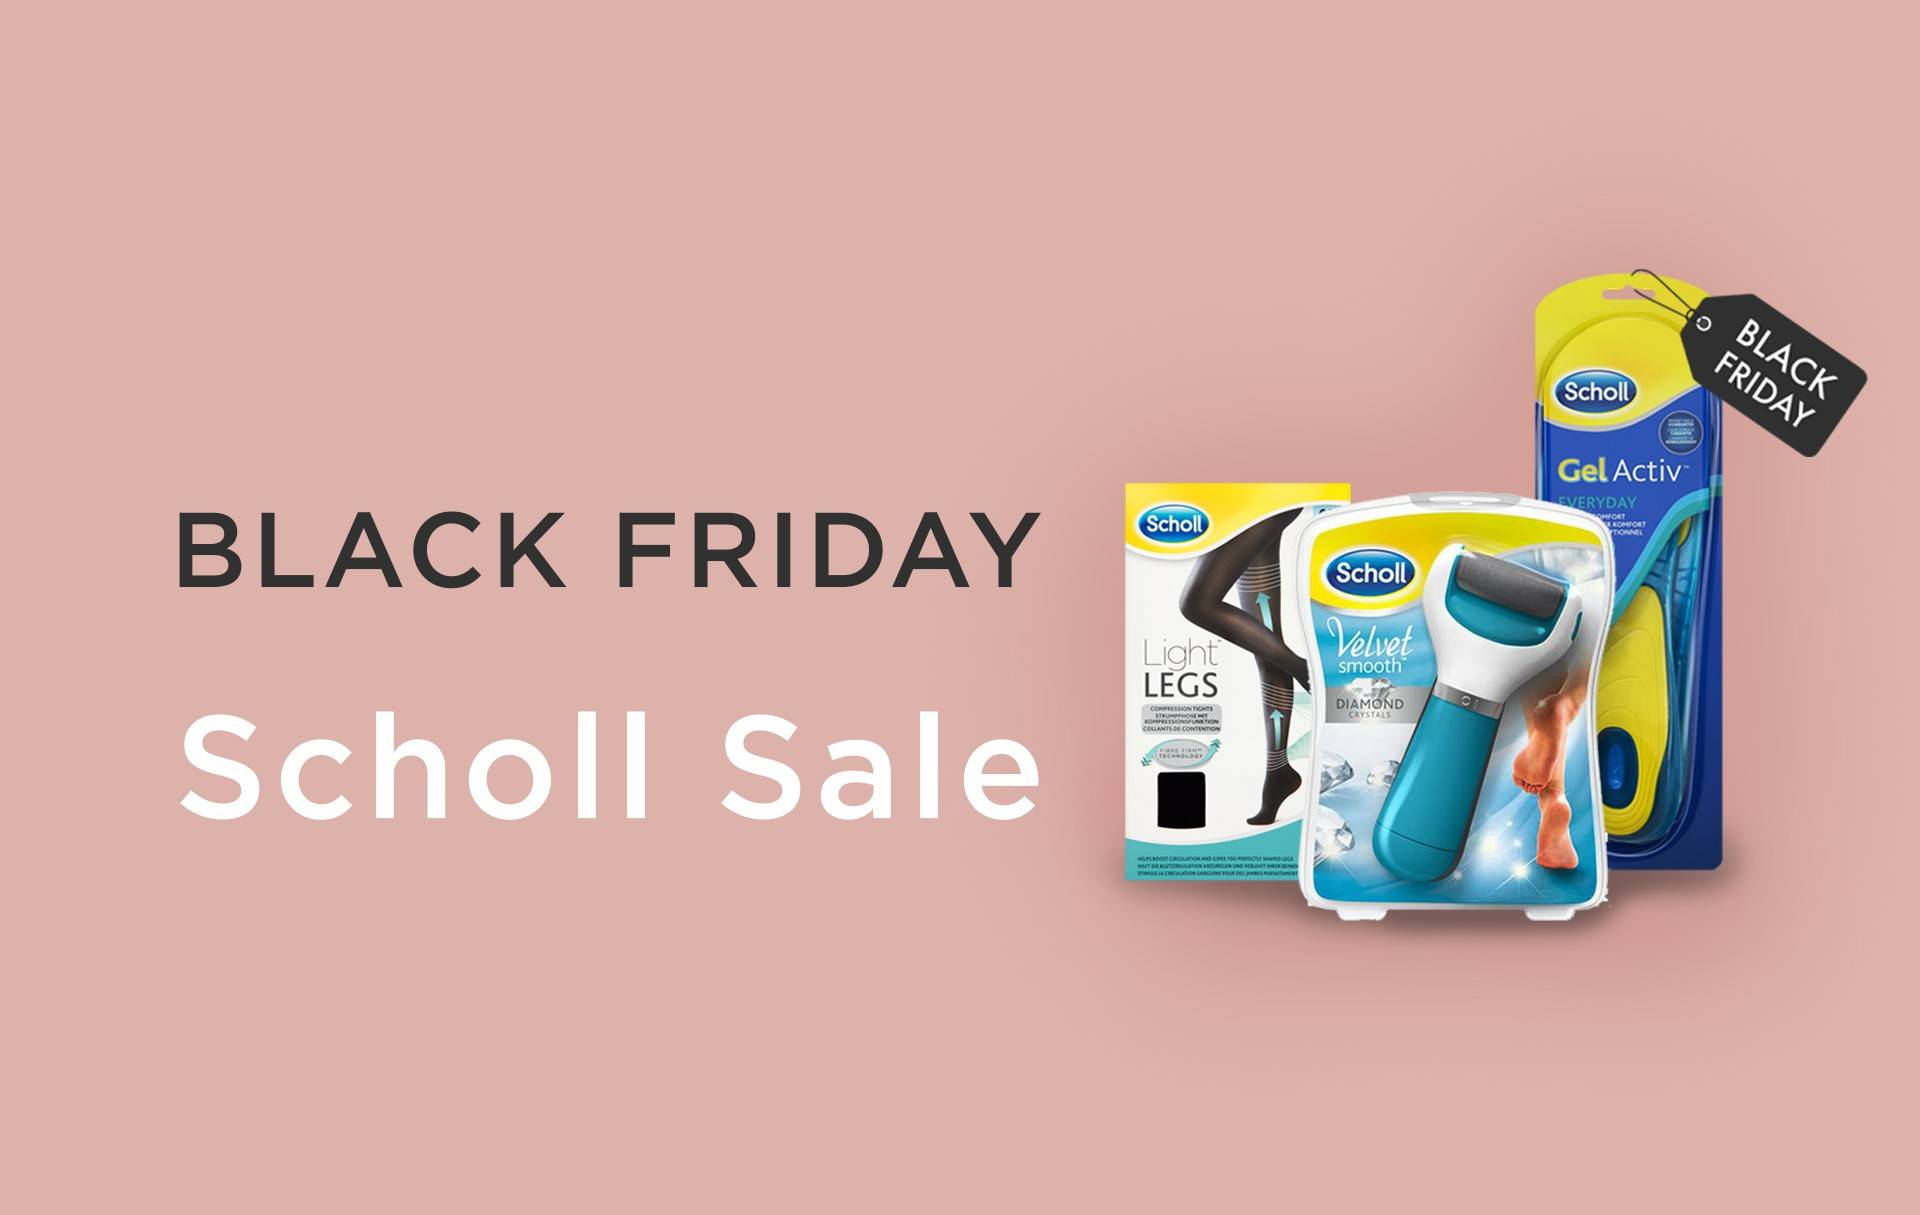 Scholl Black Friday Cyber Monday